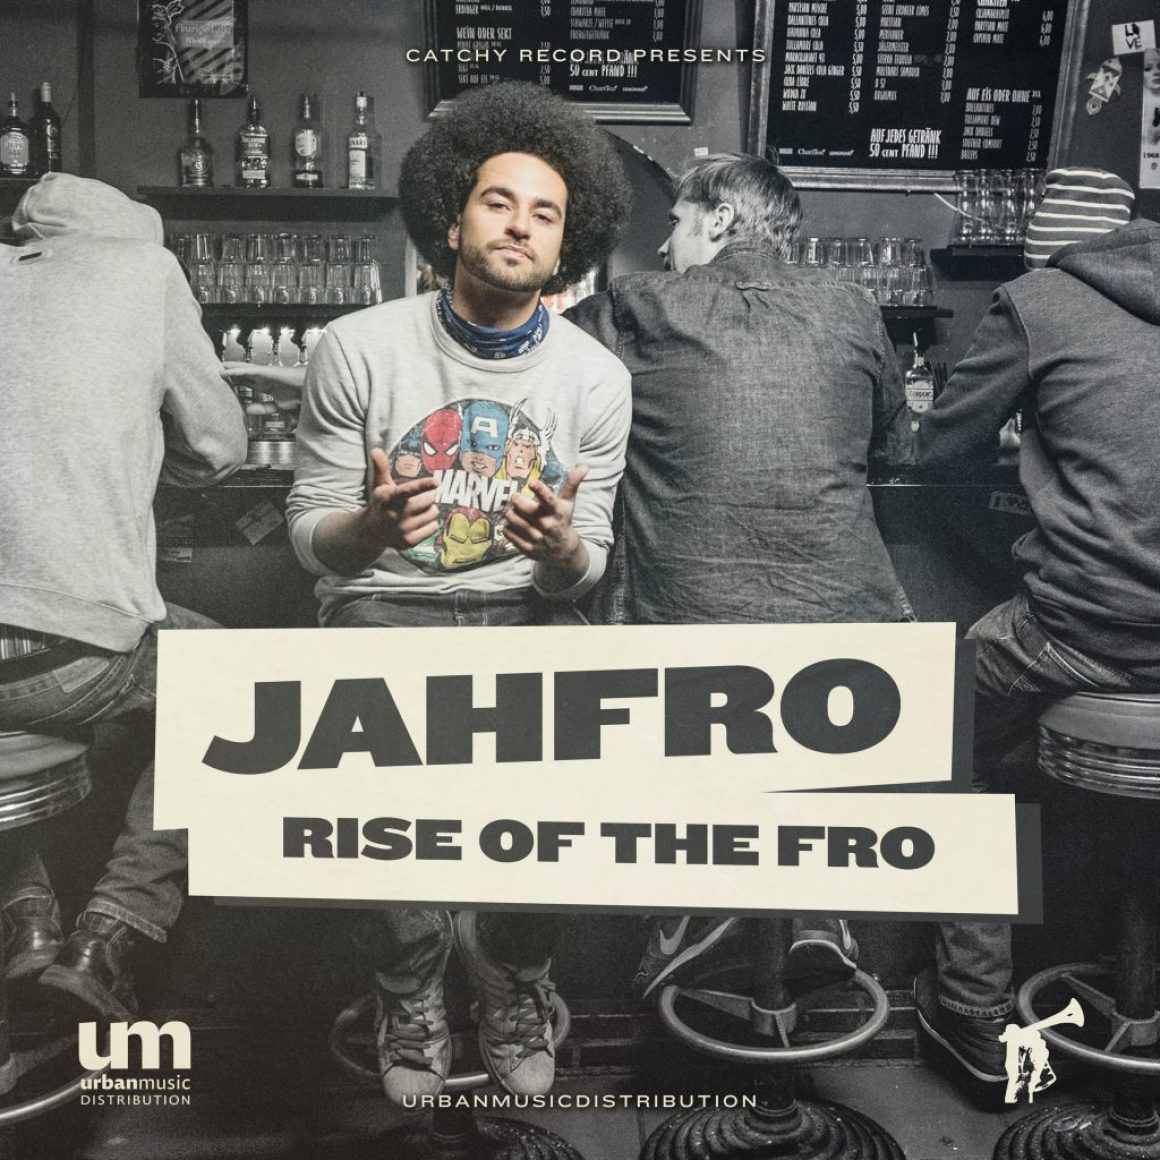 New Release: Jahfro – Rise Of The Fro – EP (Catchy Record)